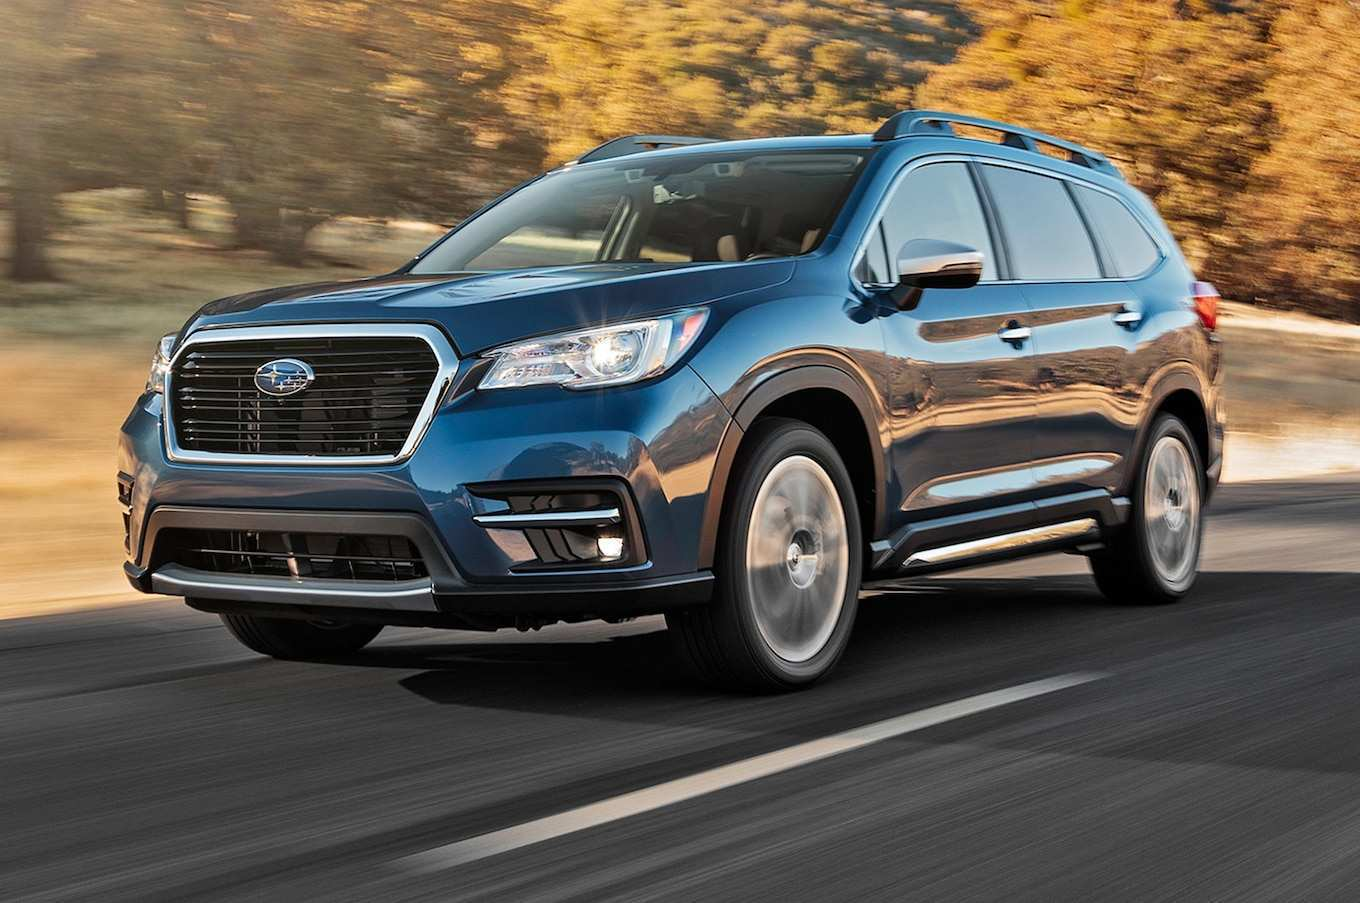 32 The Best Subaru Ascent 2019 Engine Concept And Review